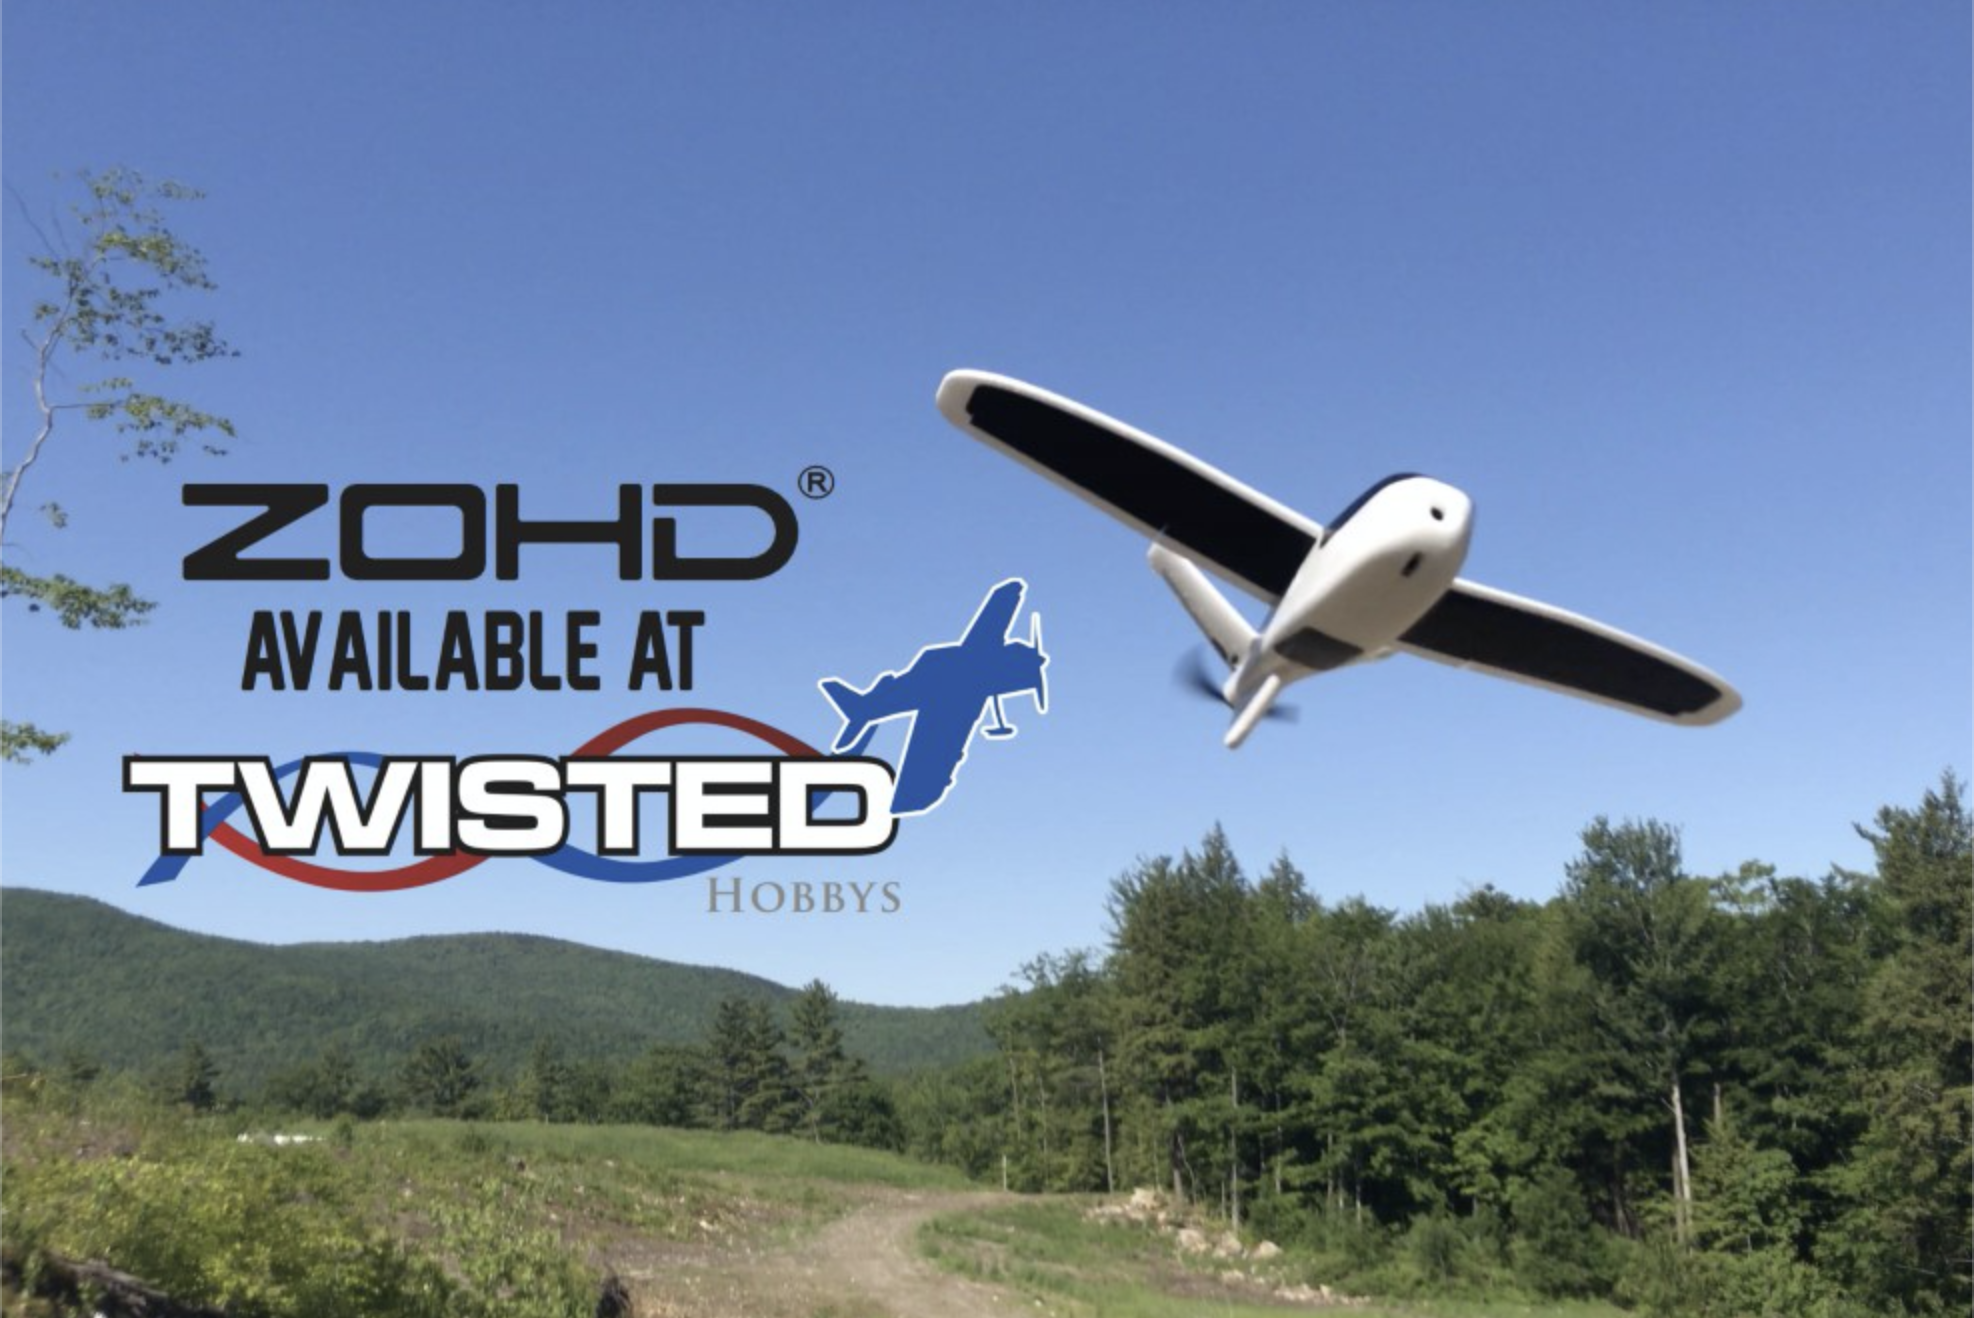 ZOHD Nano Talon and other PNP FPV planes now available!